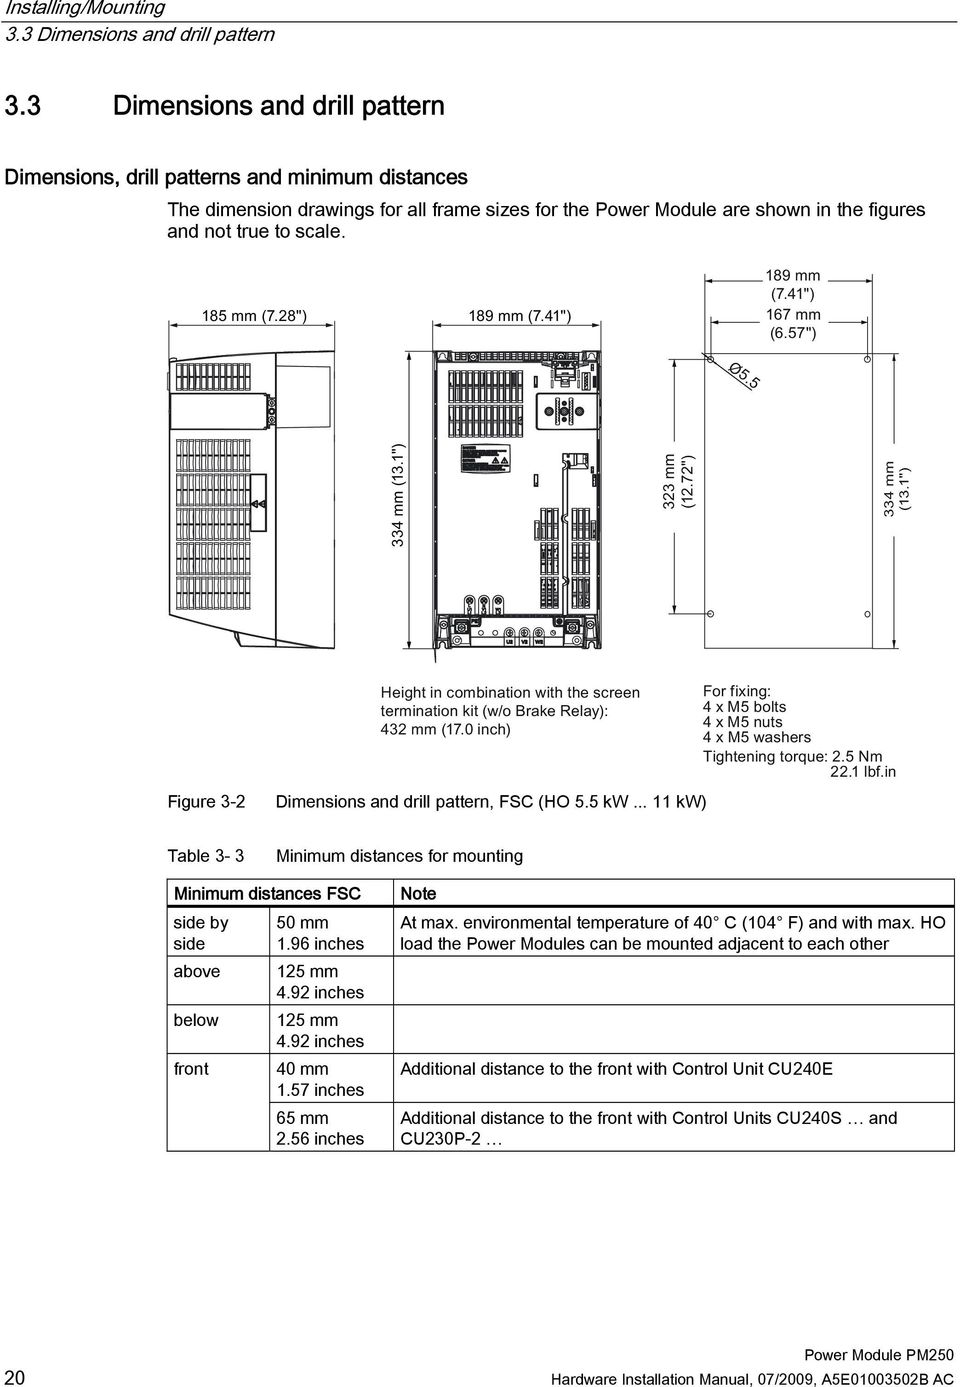 Figure 3-2 Dimensions and drill pattern, FSC (HO 5.5 kw... 11 kw) Table 3-3 Minimum distances for mounting Minimum distances FSC side by side above below front 50 mm 1.96 inches 125 mm 4.